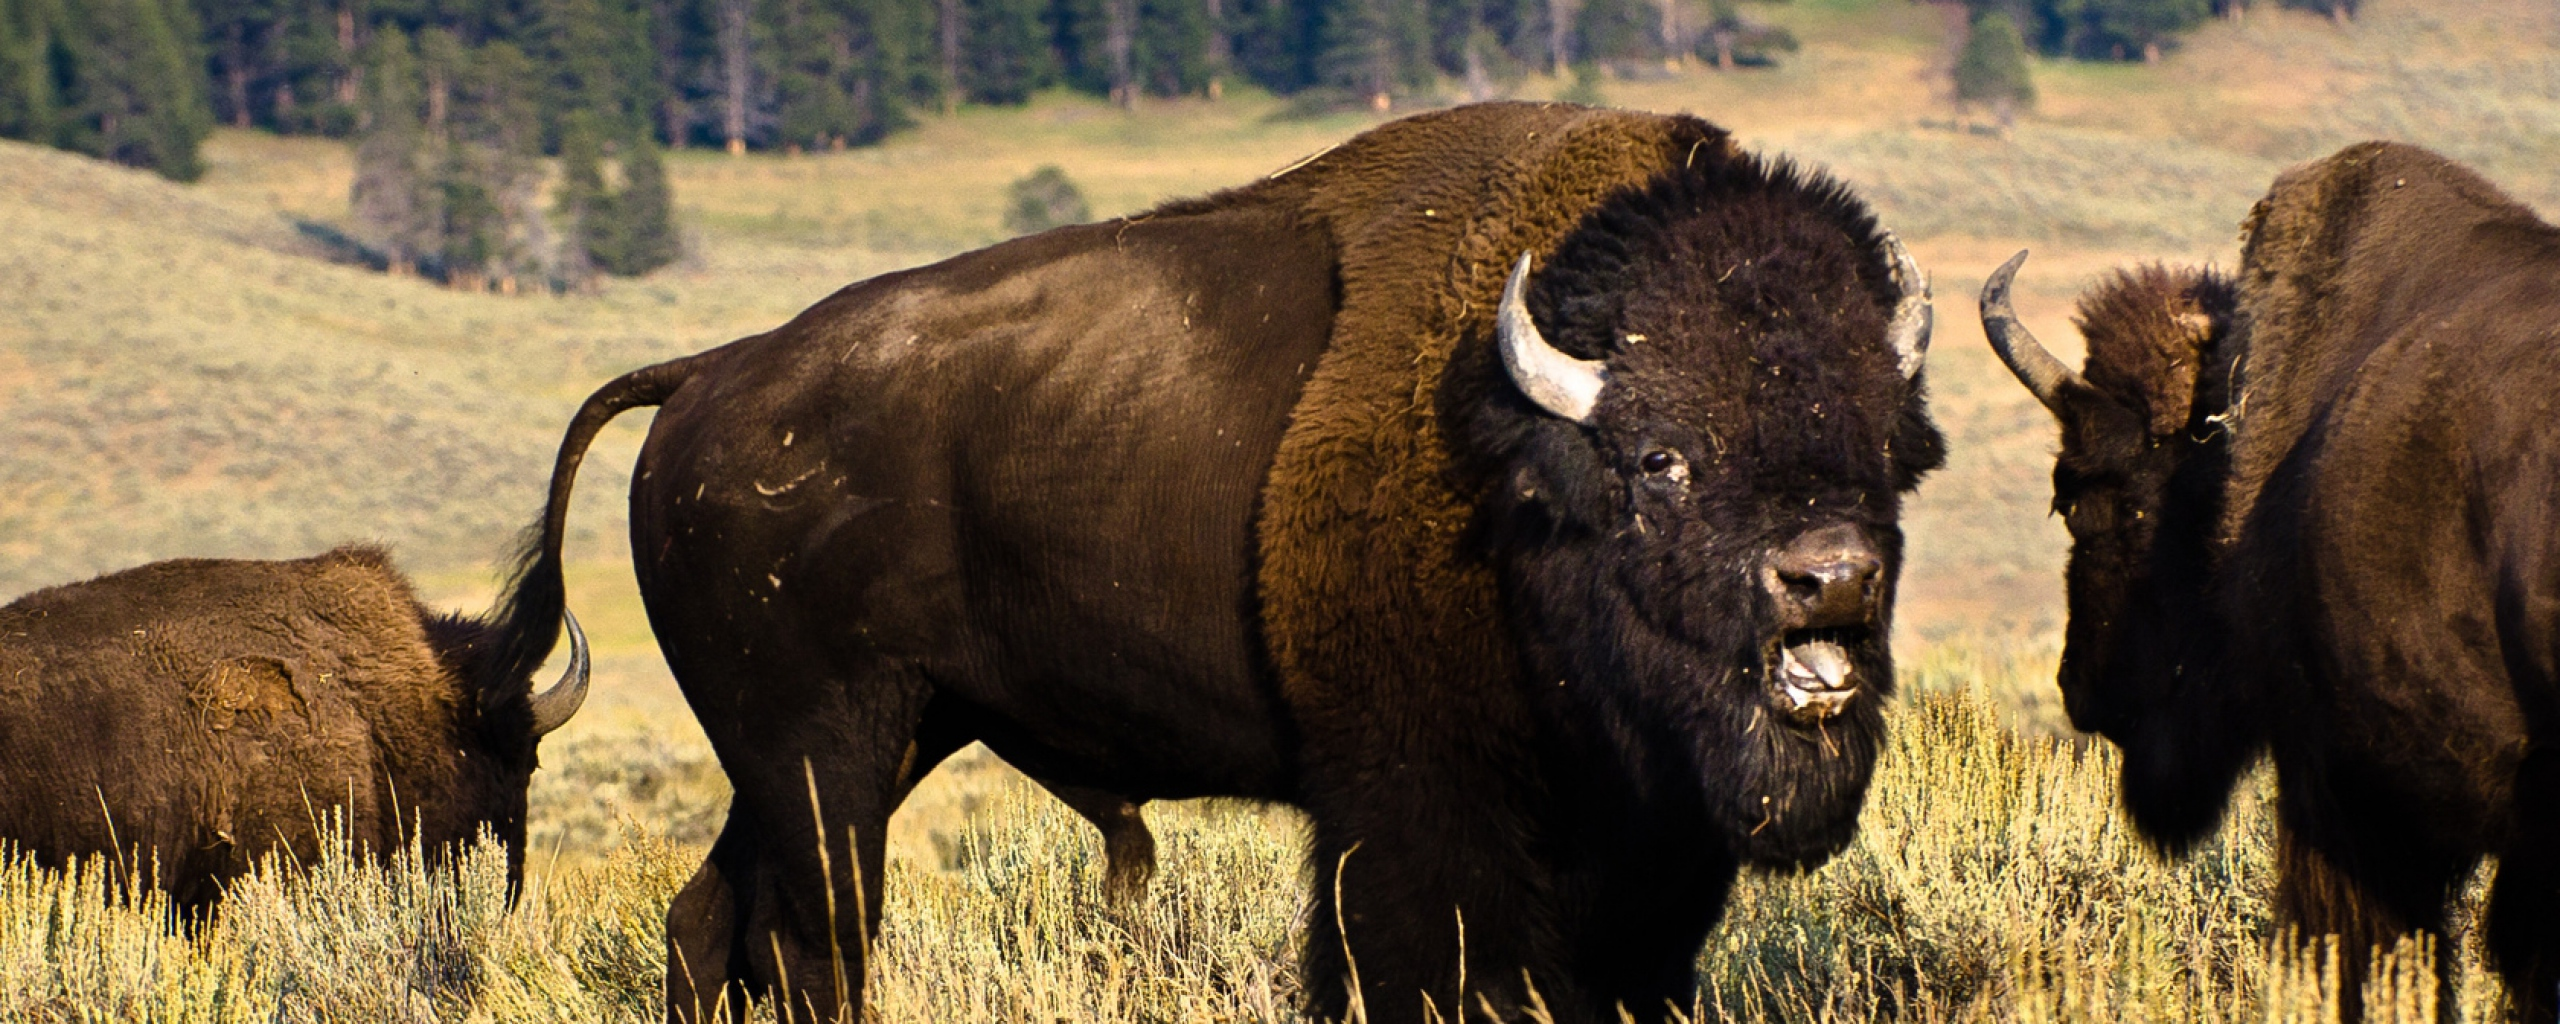 Wallpaper Buffalo Download Viewer Tolson Girls Water 10649 Picture 2560x1024